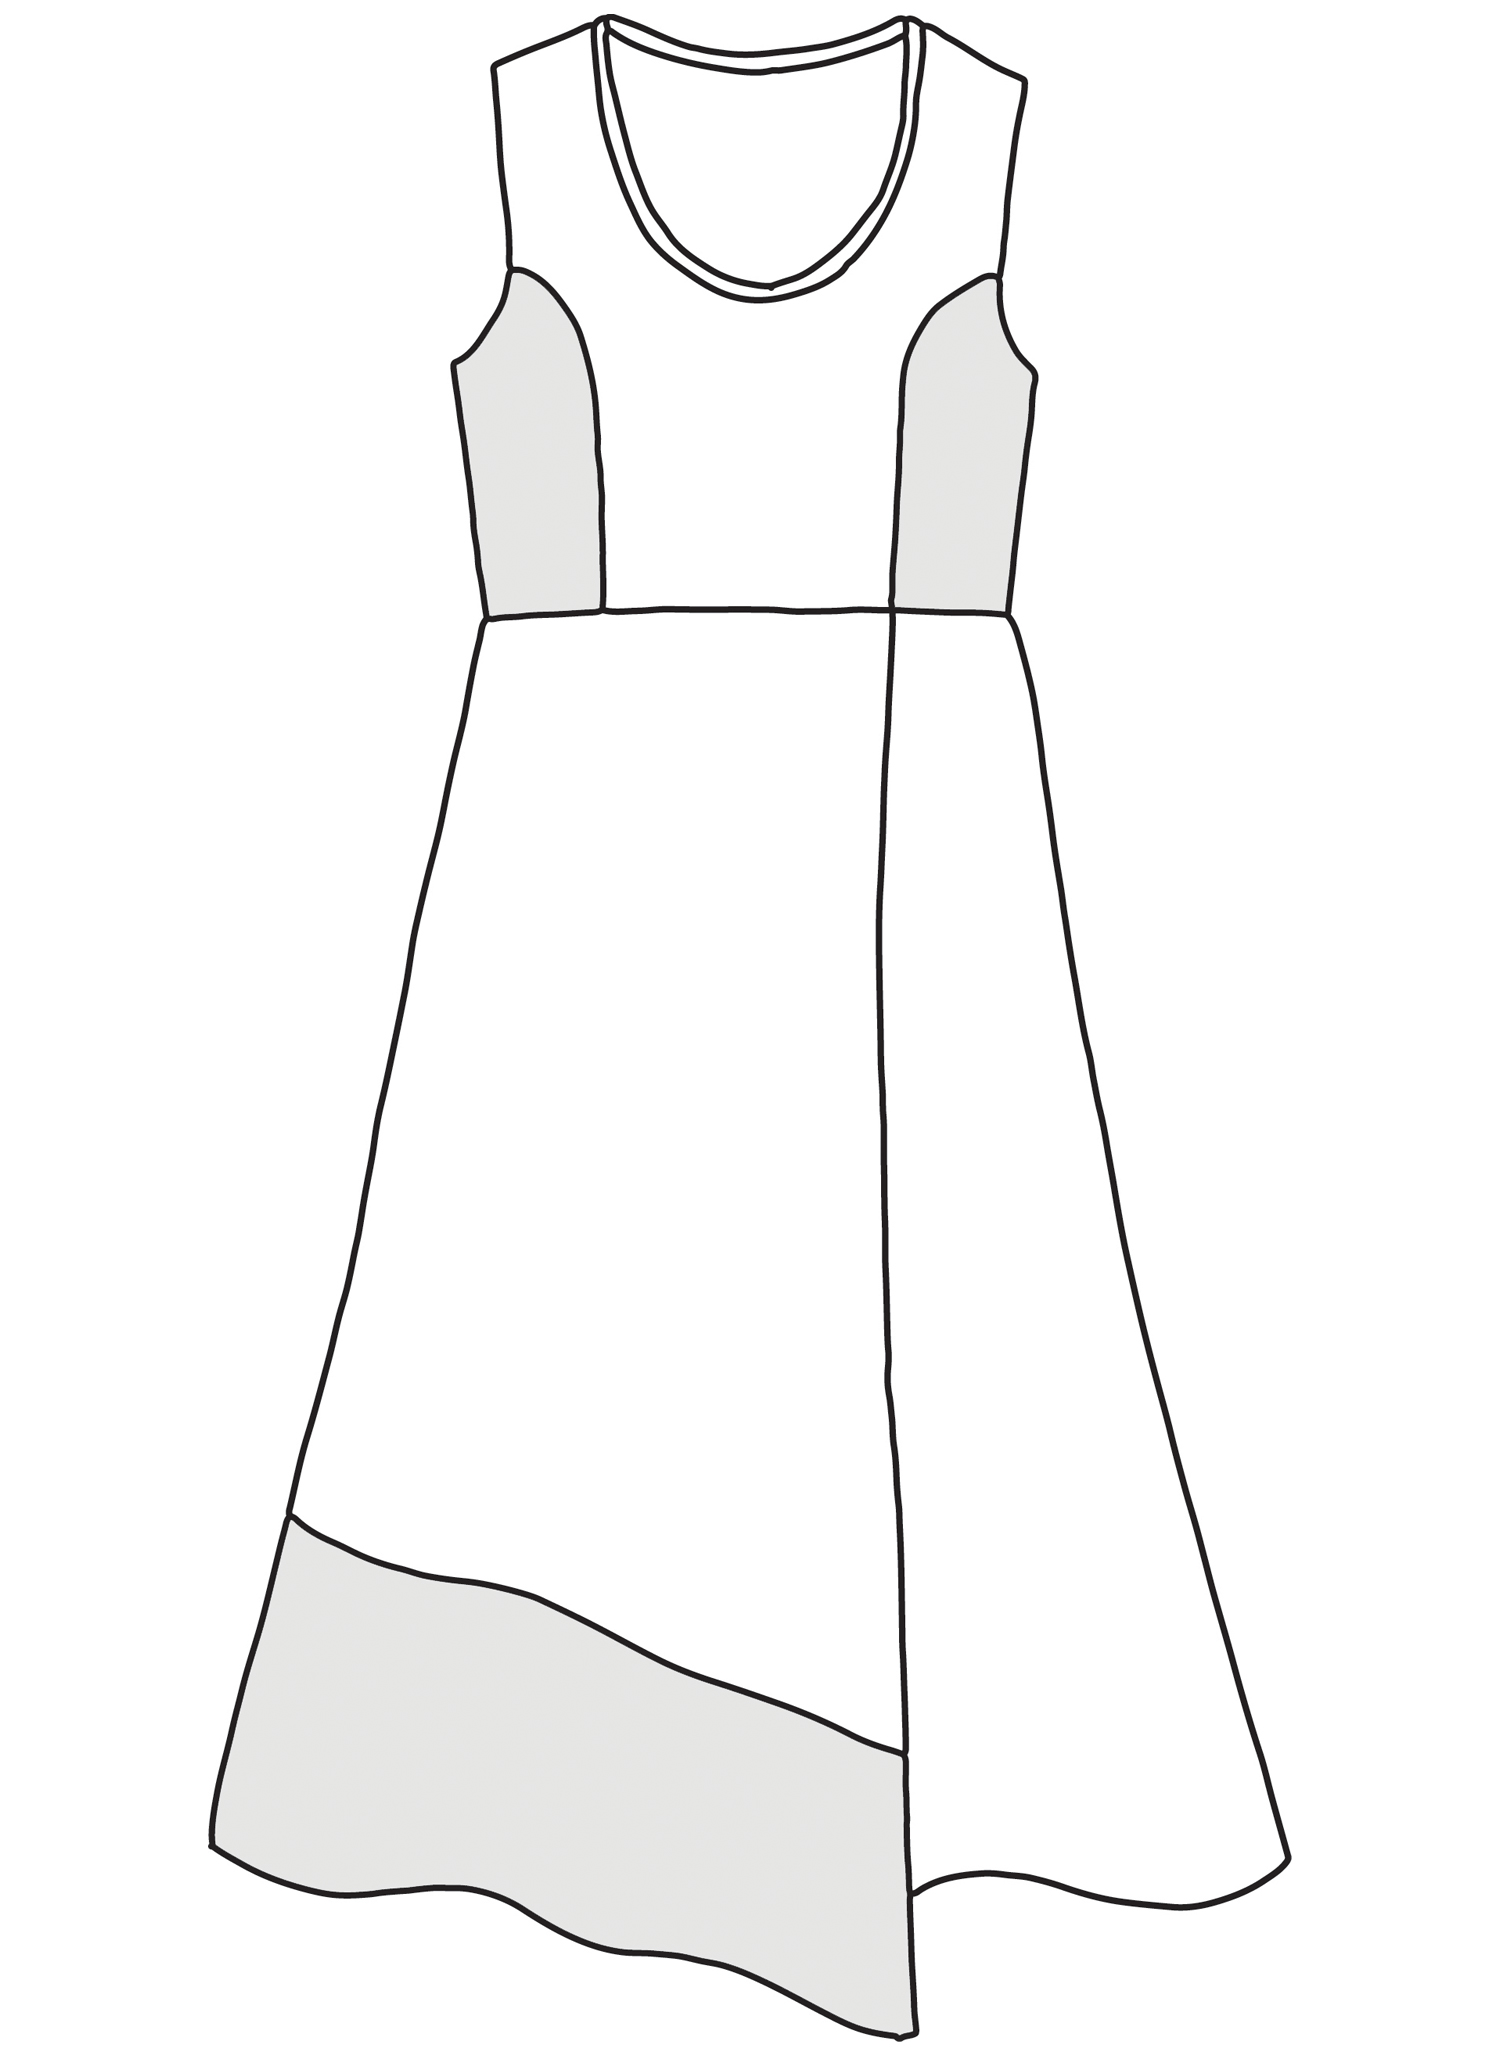 Midtown Dress sketch image